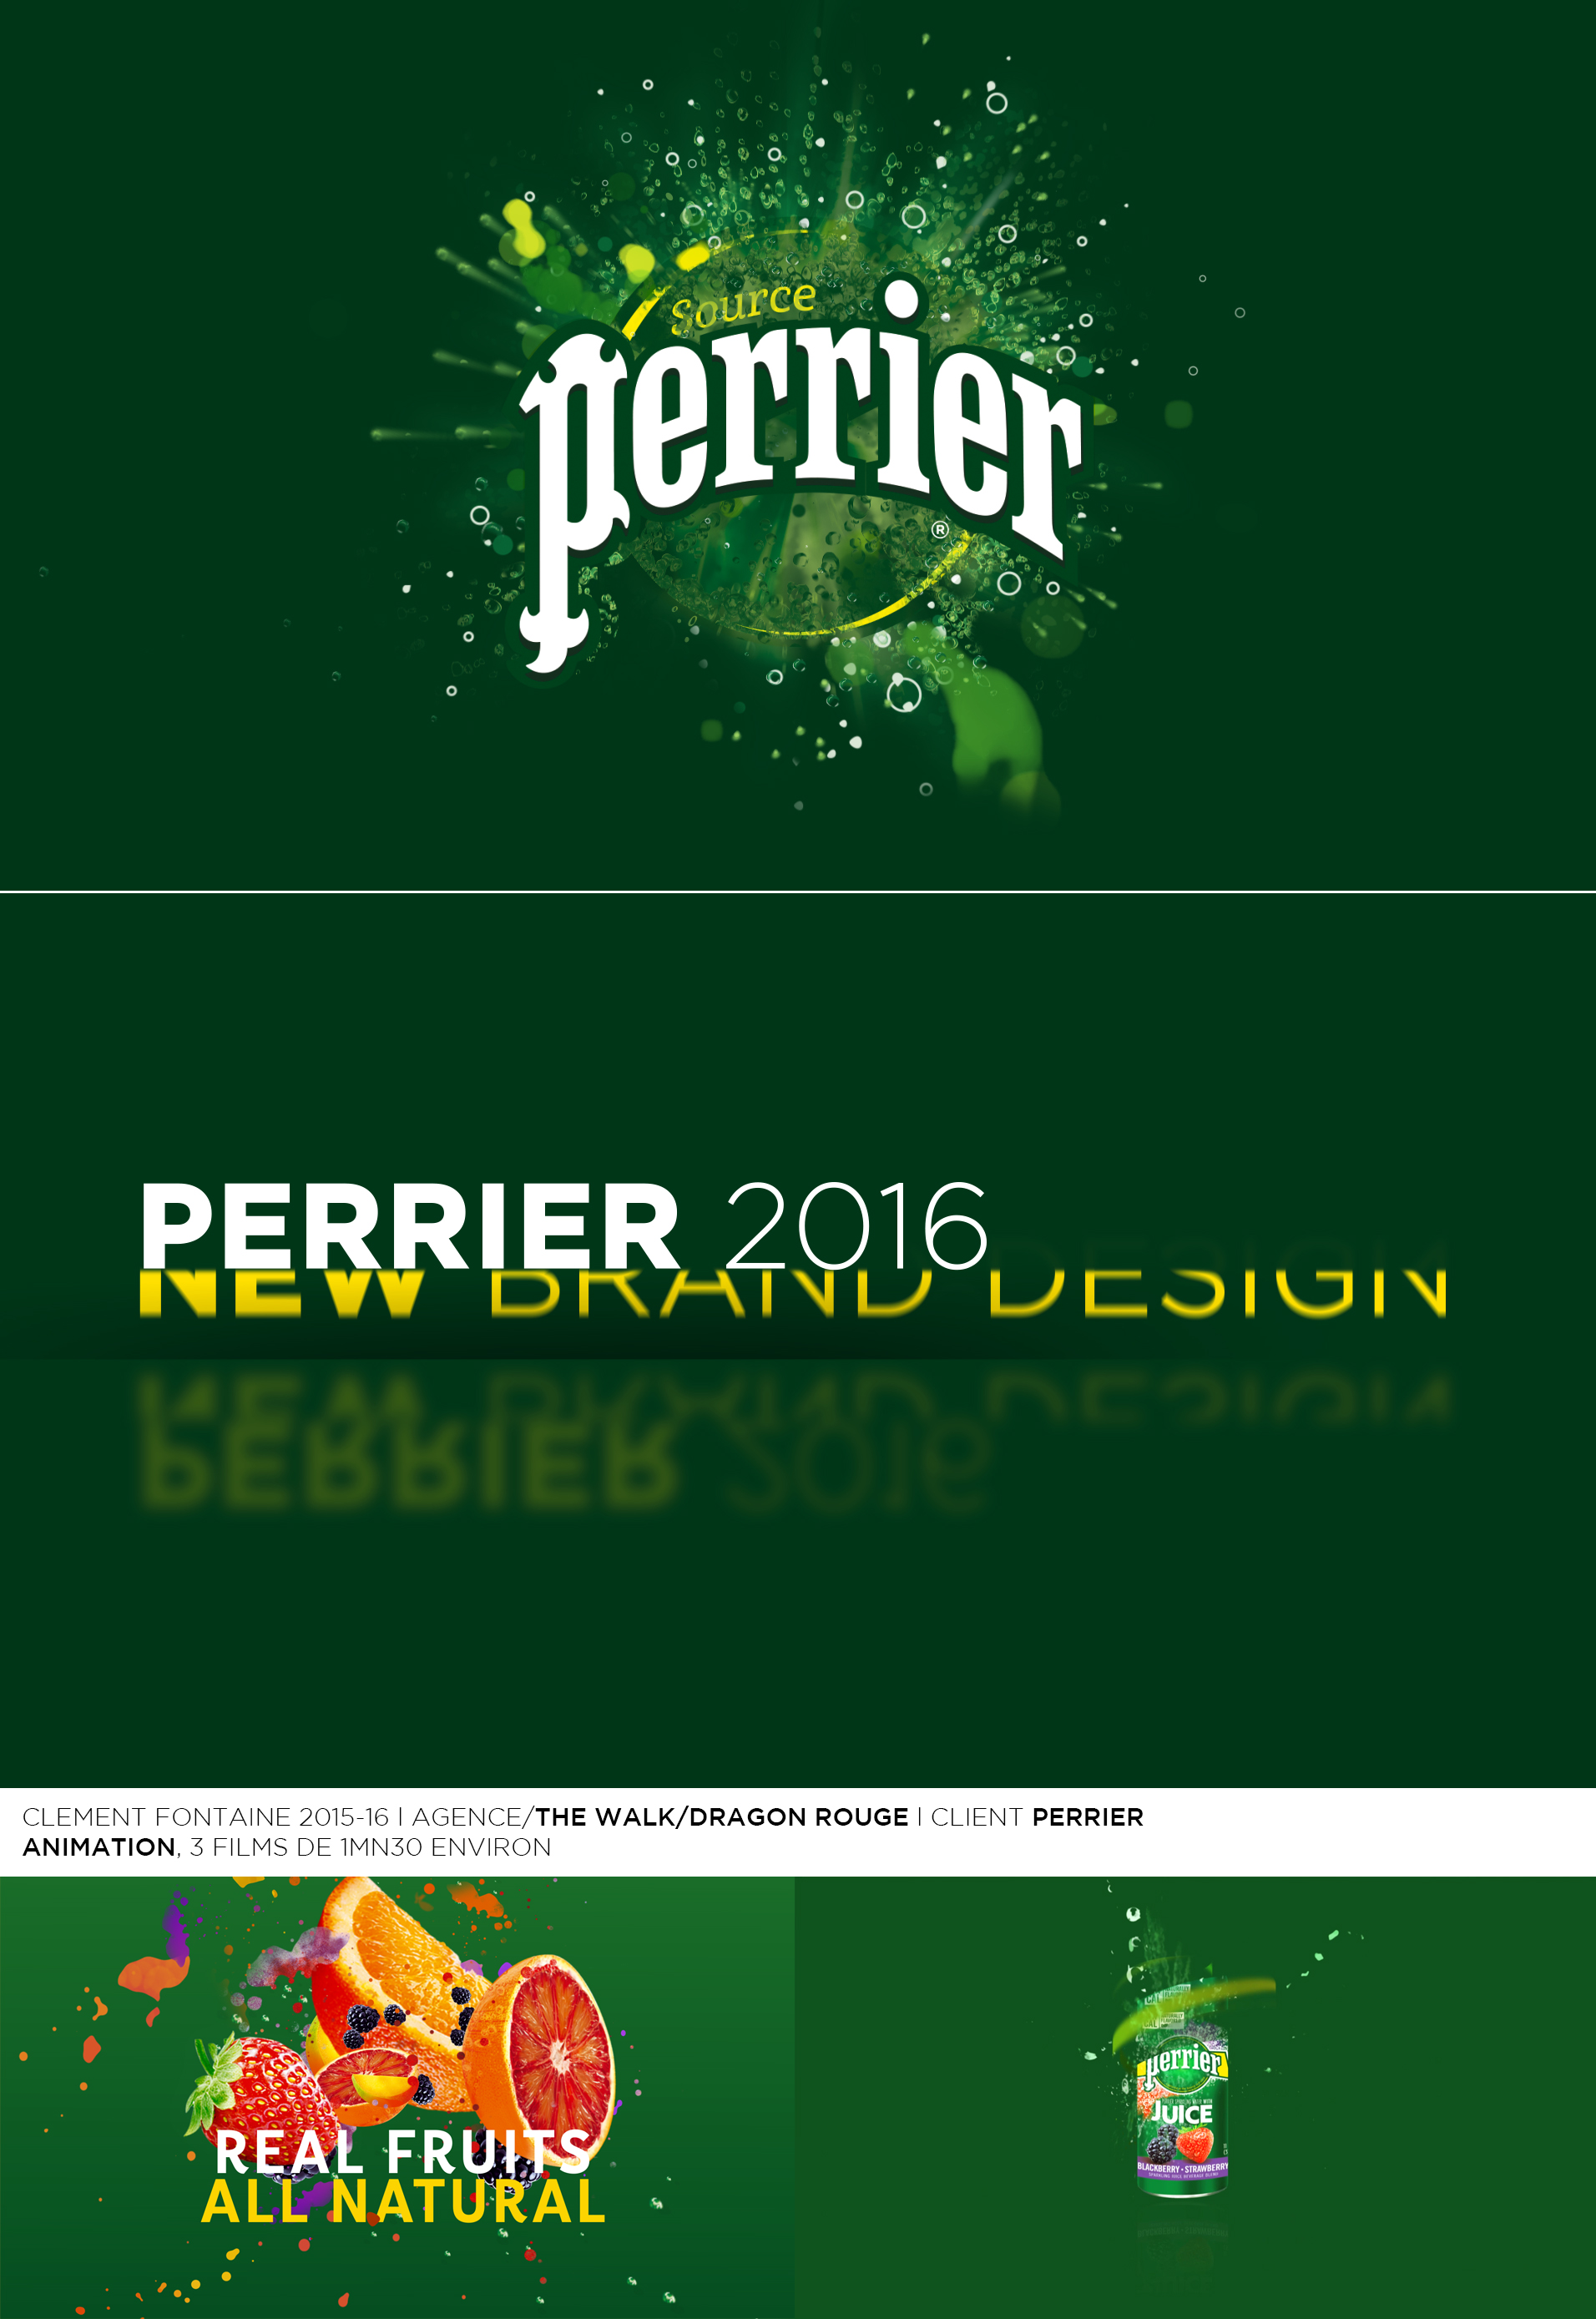 perrier-new-brand-design